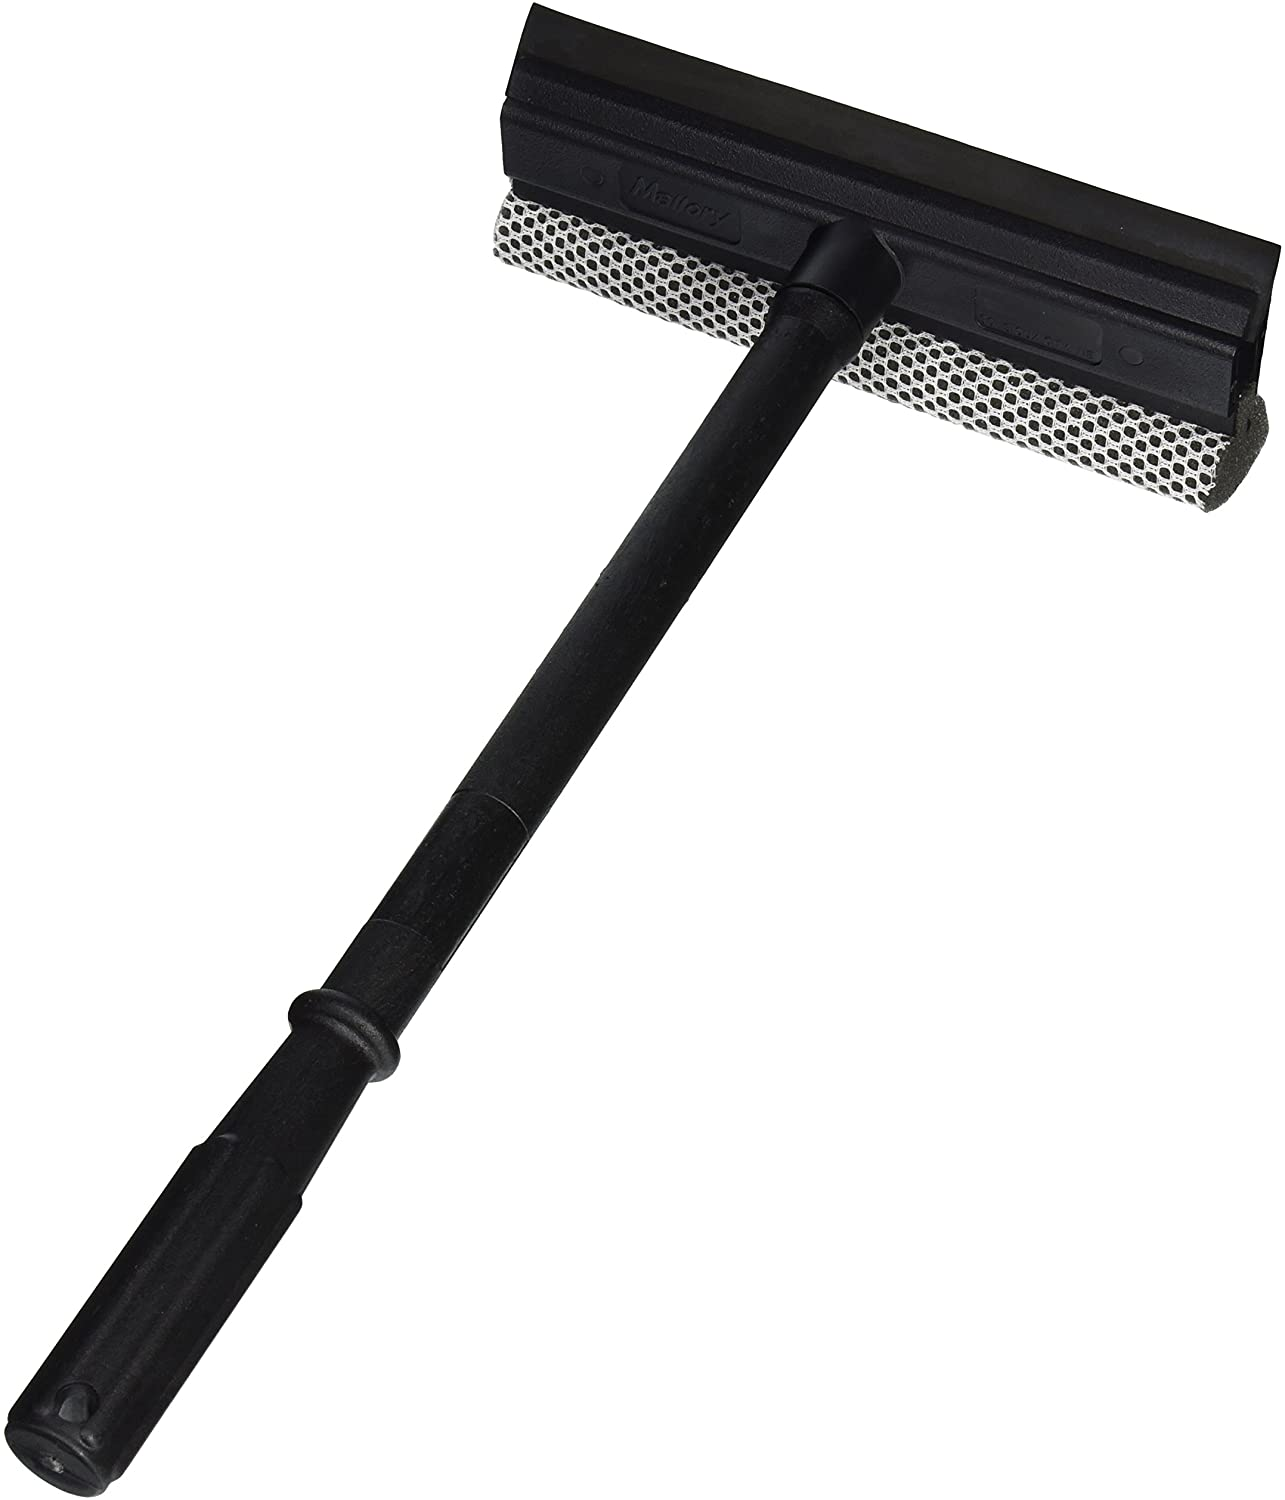 Mallory WS1524A 8-Inch Bug Sponge Squeegee, Black